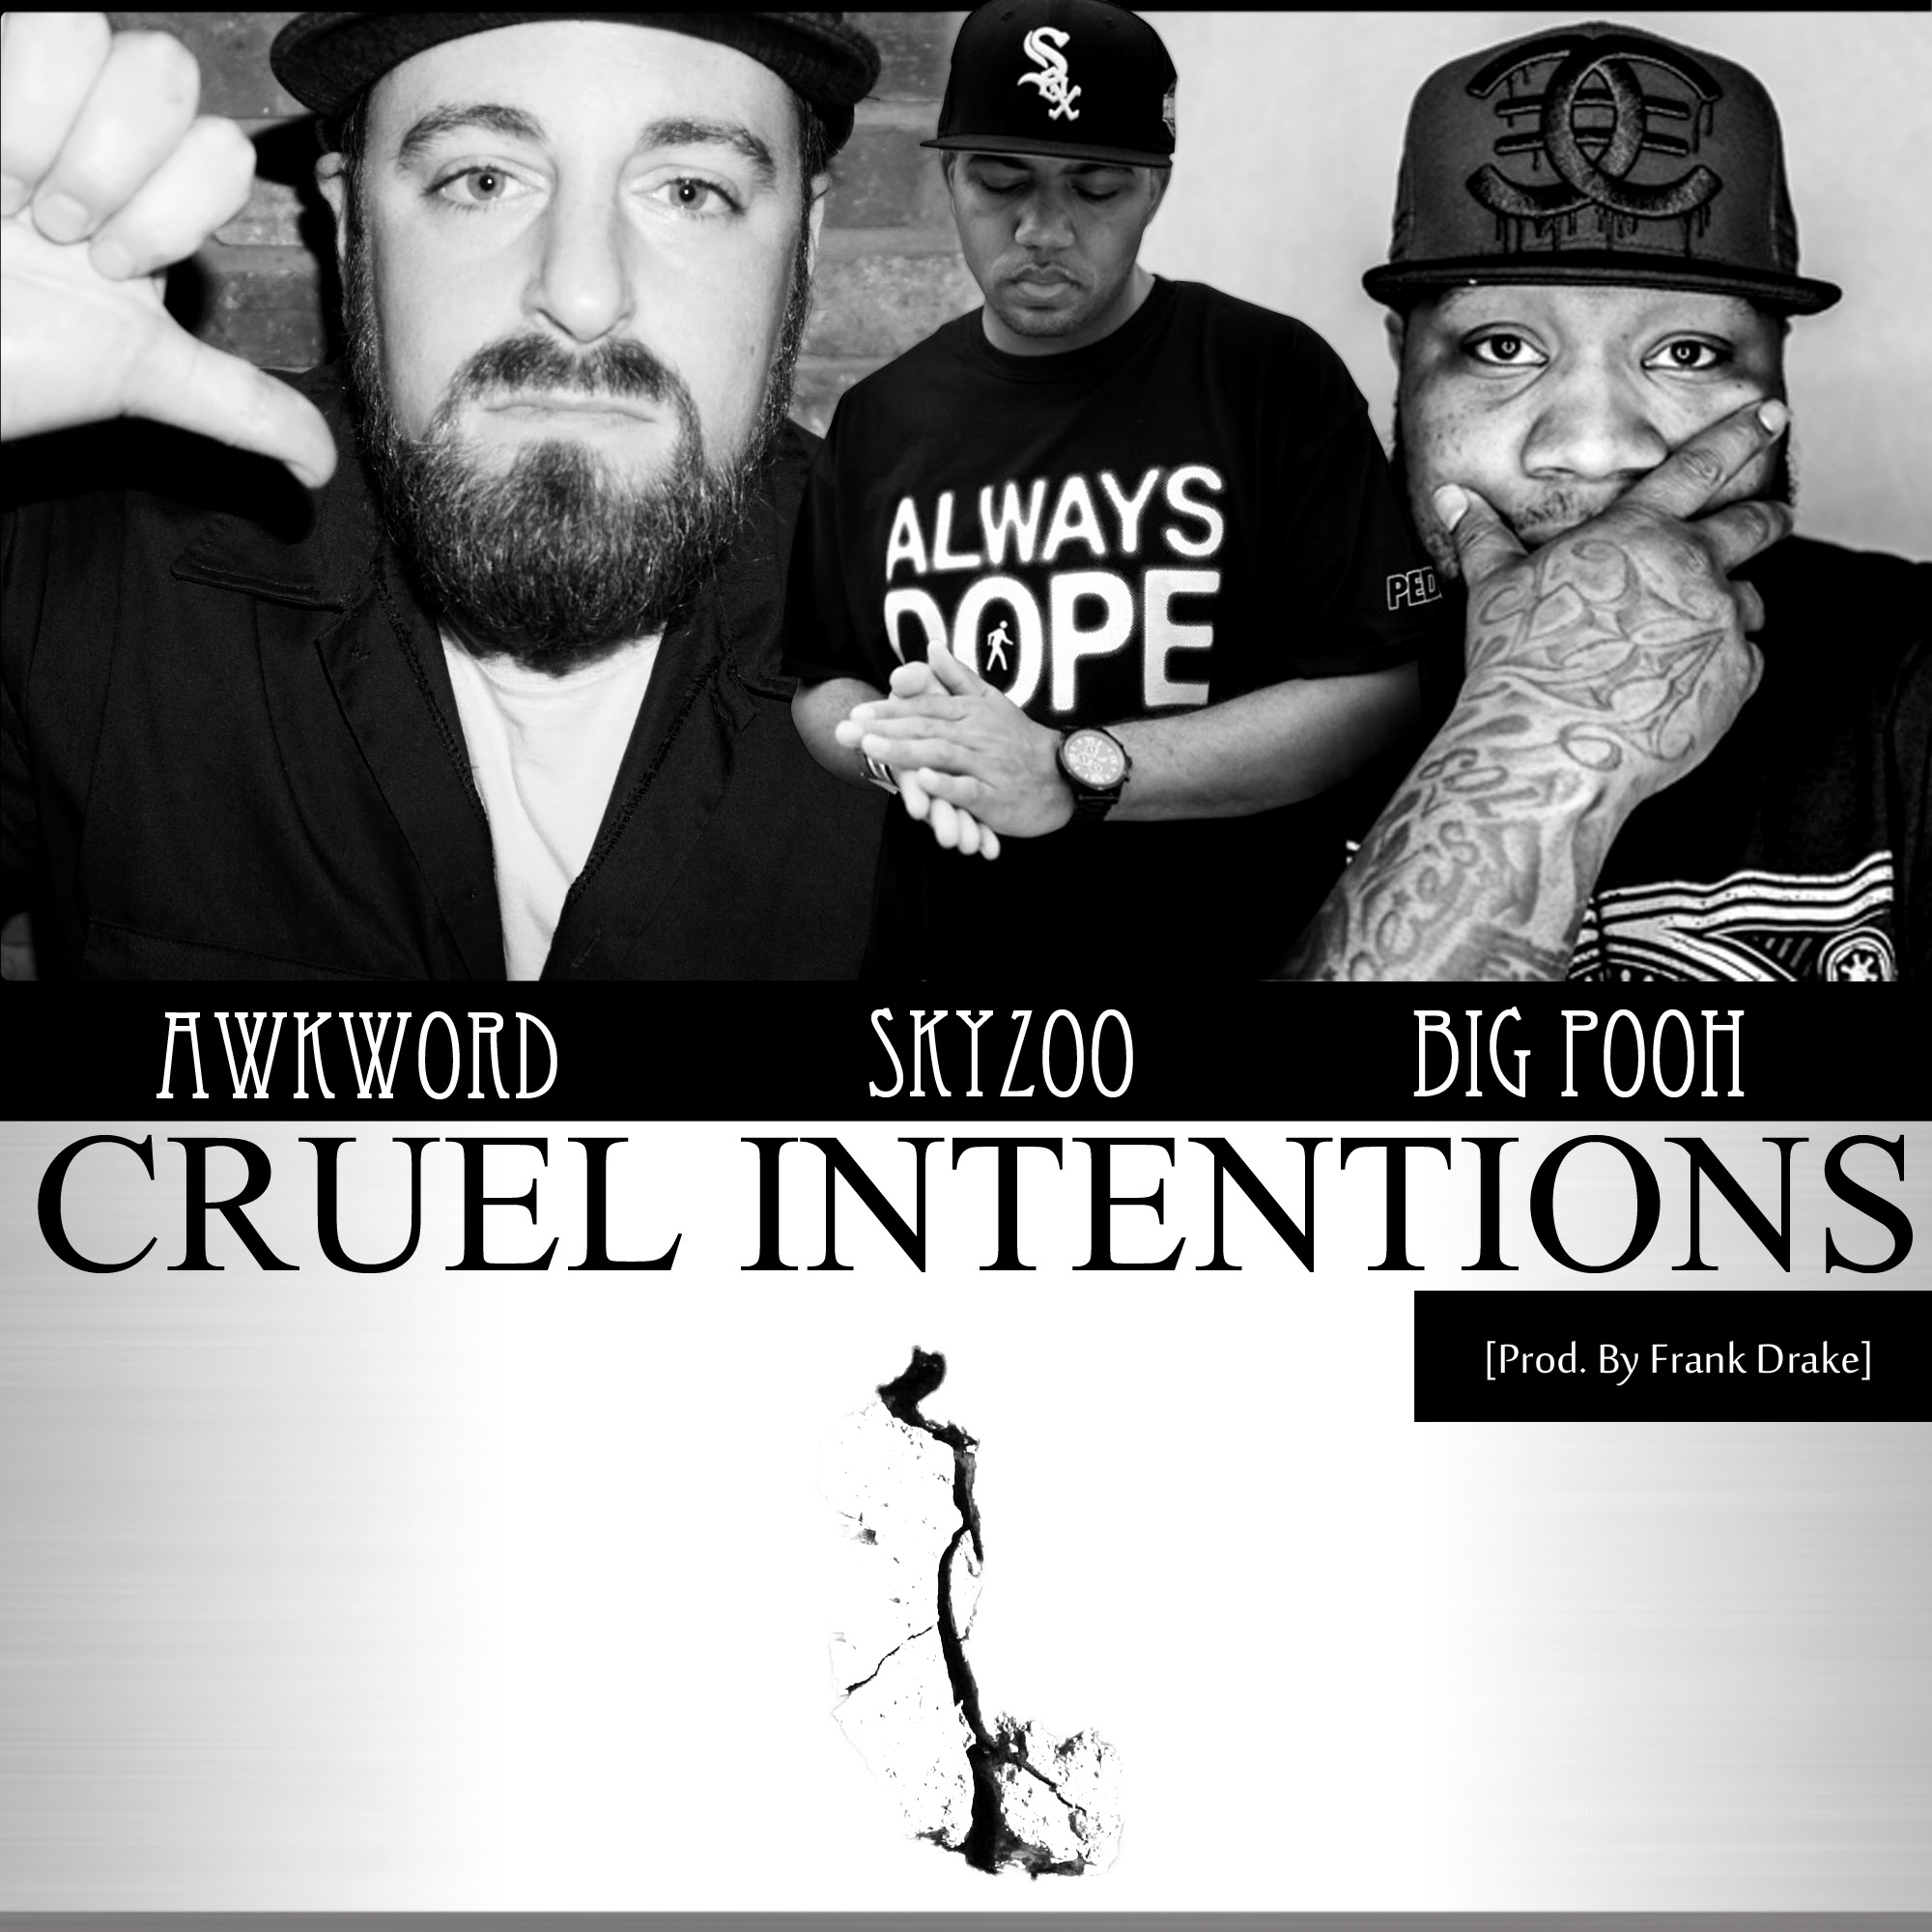 AWKWORD ft. Skyzoo & Rapper Big Pooh Cruel Intentions (Remix) [prod. by Frank Drake]